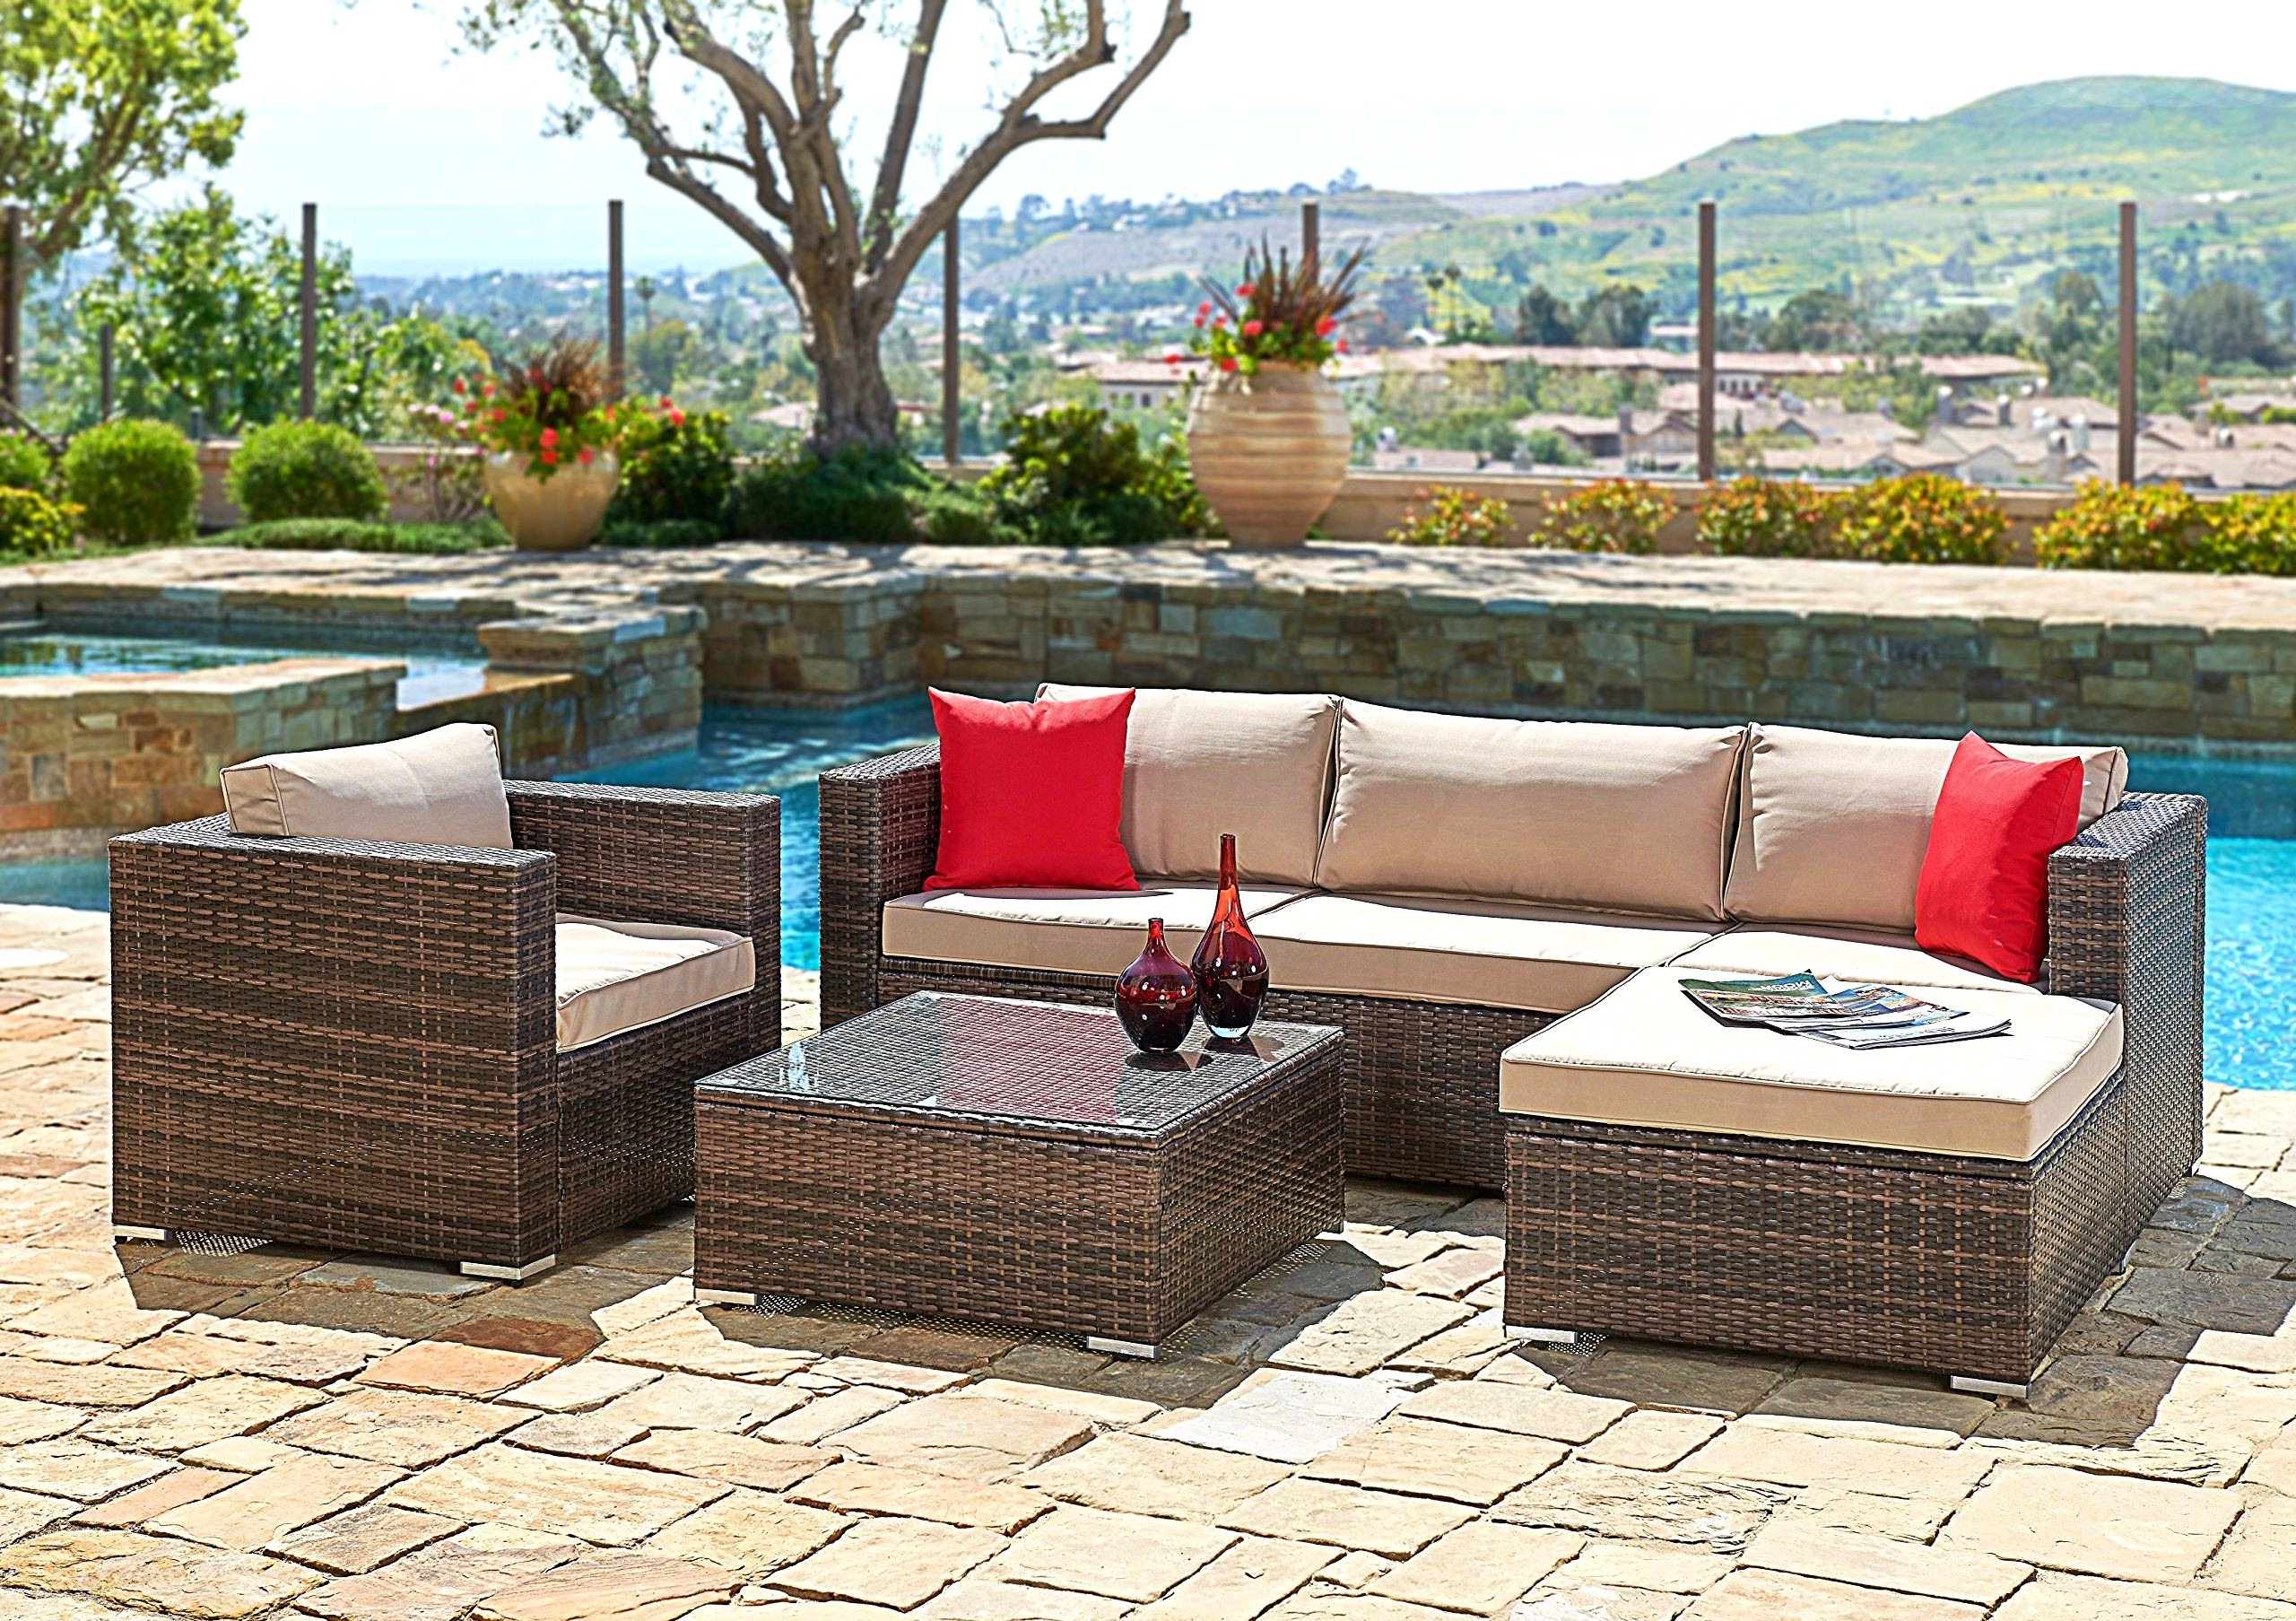 Outdoor Patio Furniture Edmonton Luxury Sectional Patio Furniture Within Fashionable Edmonton Patio Conversation Sets (View 6 of 15)